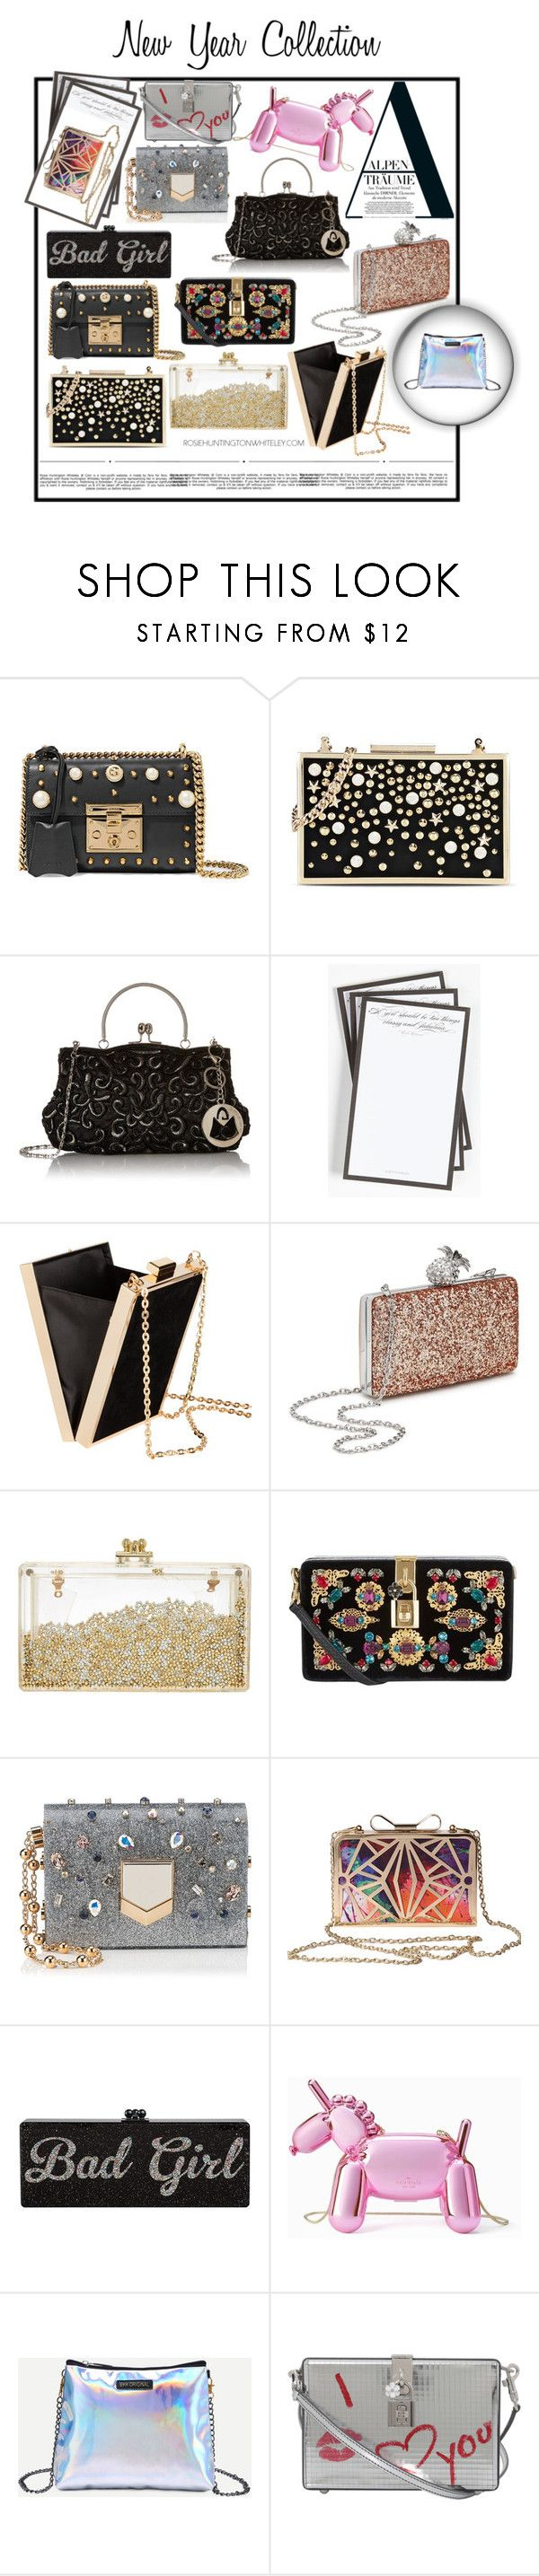 """""""New Year Bags Collection😜"""" by s-timi ❤ liked on Polyvore featuring Gucci, Karl Lagerfeld, Murphy, Ben's Garden, Whiteley, H&M, Miss Selfridge, Dolce&Gabbana, Jimmy Choo and Kate Spade"""